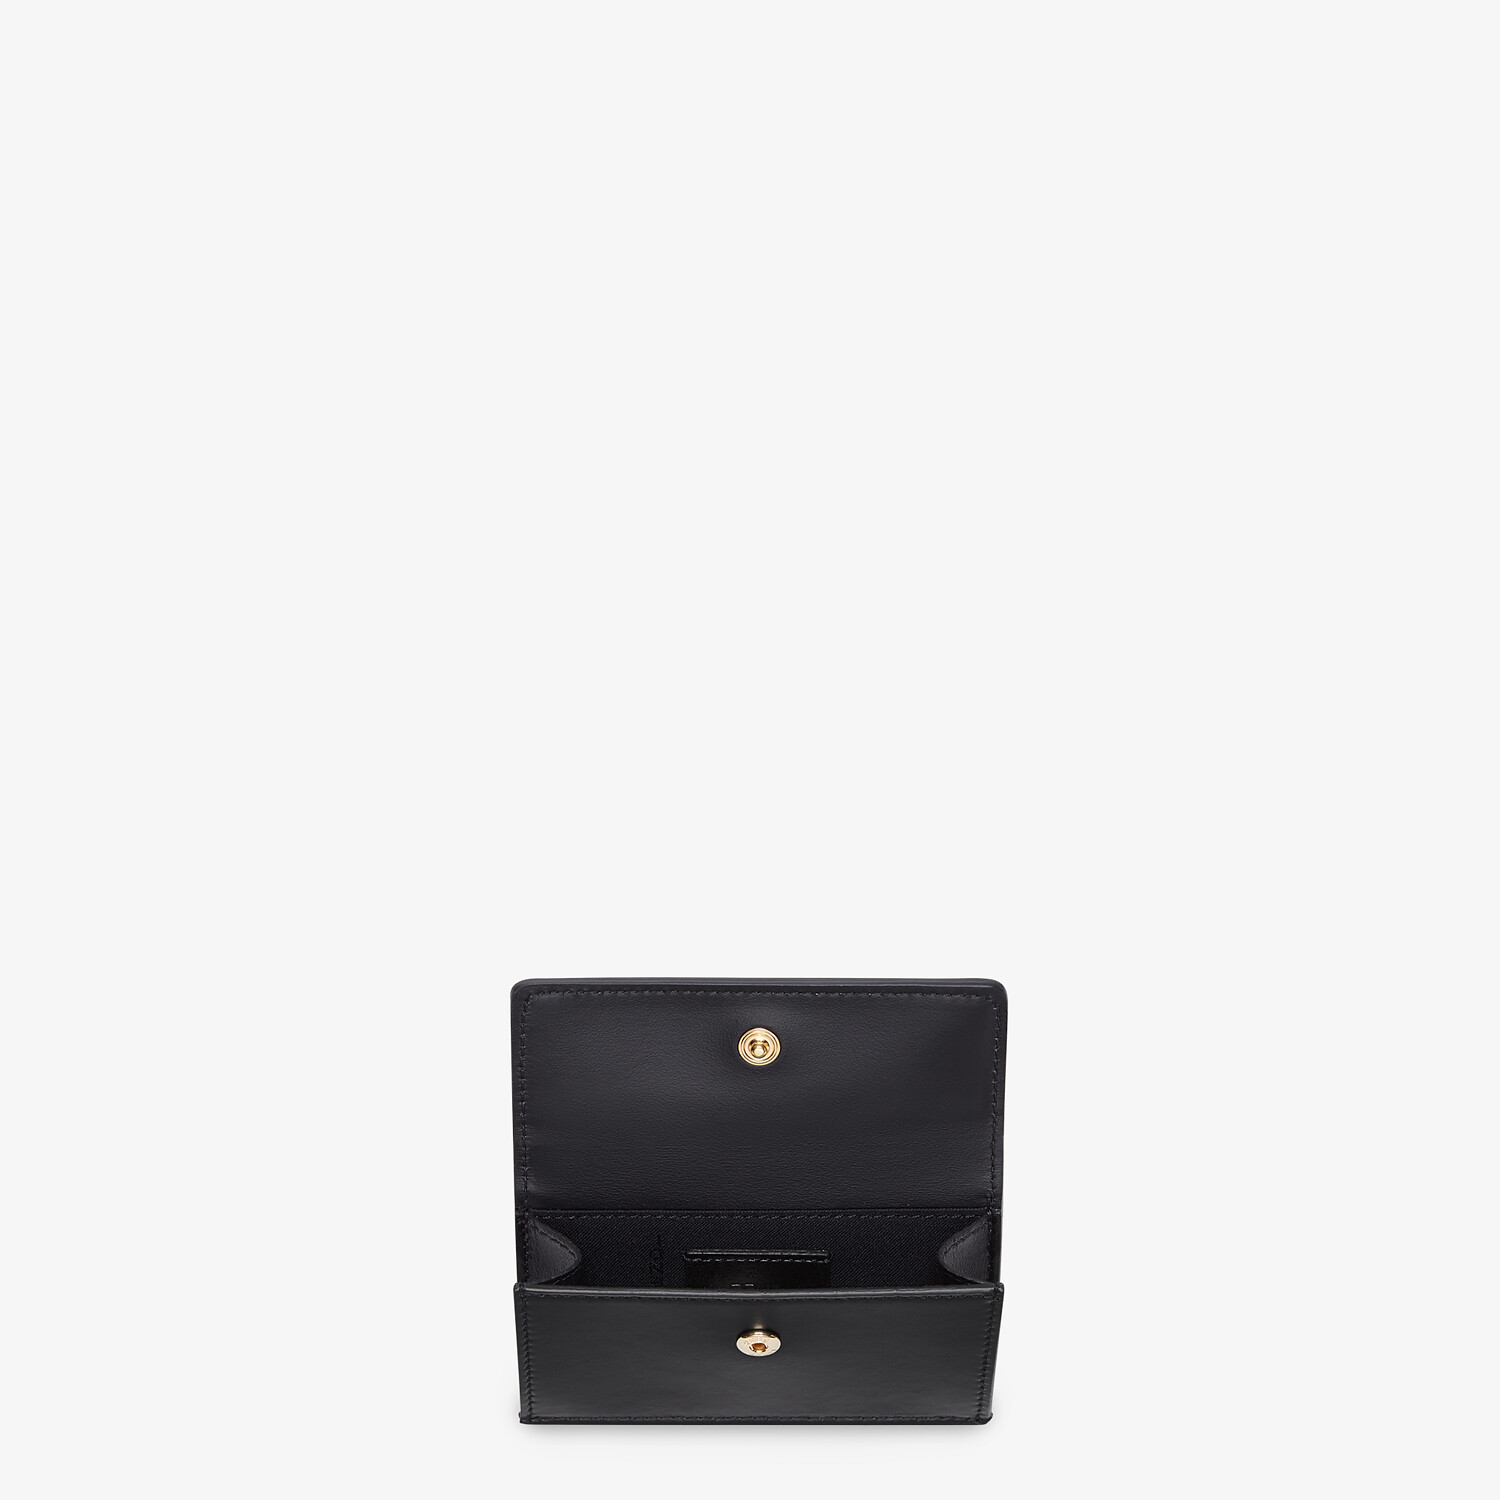 FENDI CARD HOLDER - Black leather cardholder - view 3 detail